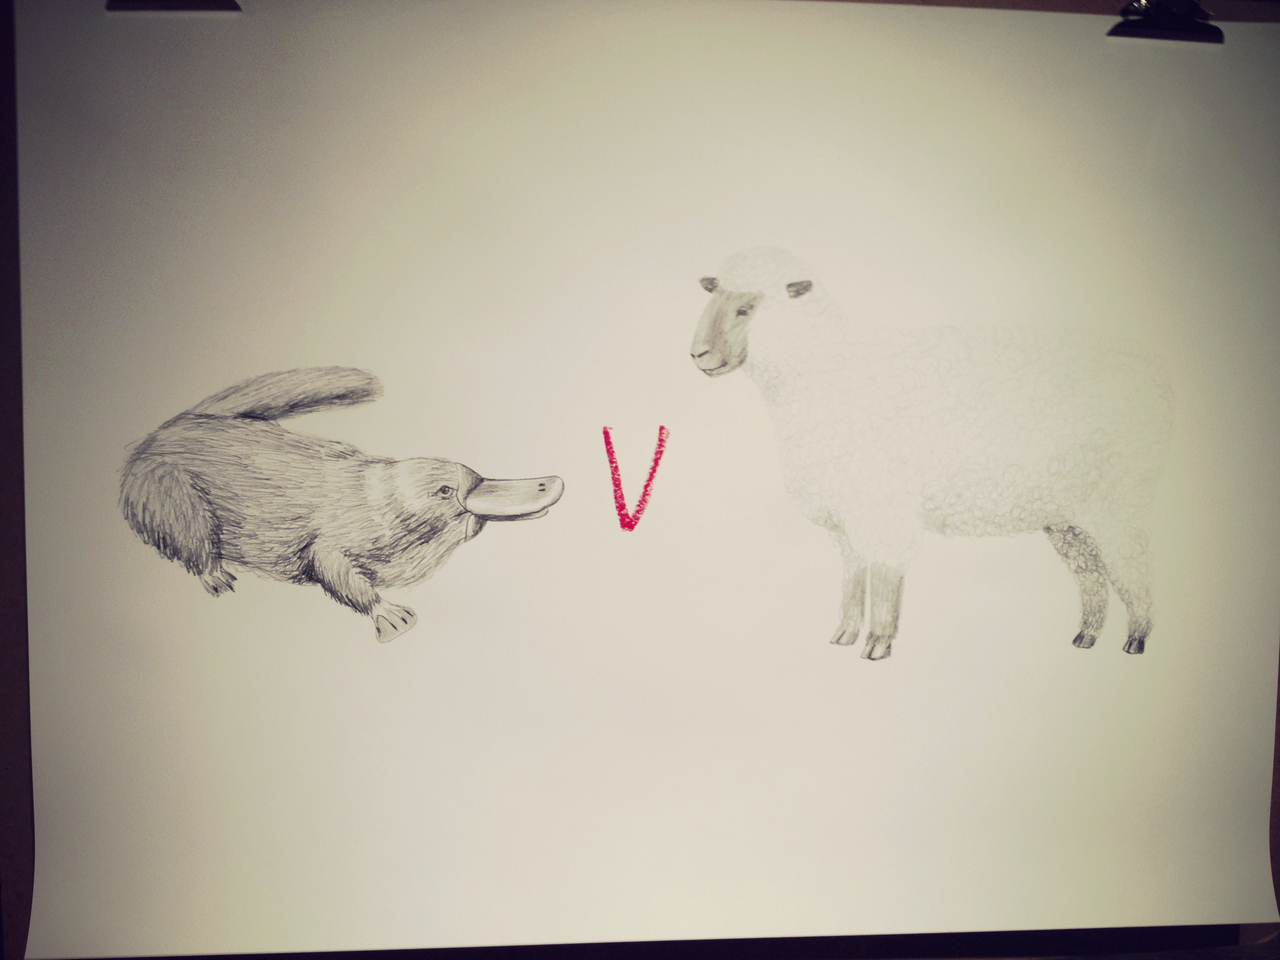 Duckbill & Sheep by Mul Holland Hwang #peppersearching #pepper #Drawing #art #brooklyn